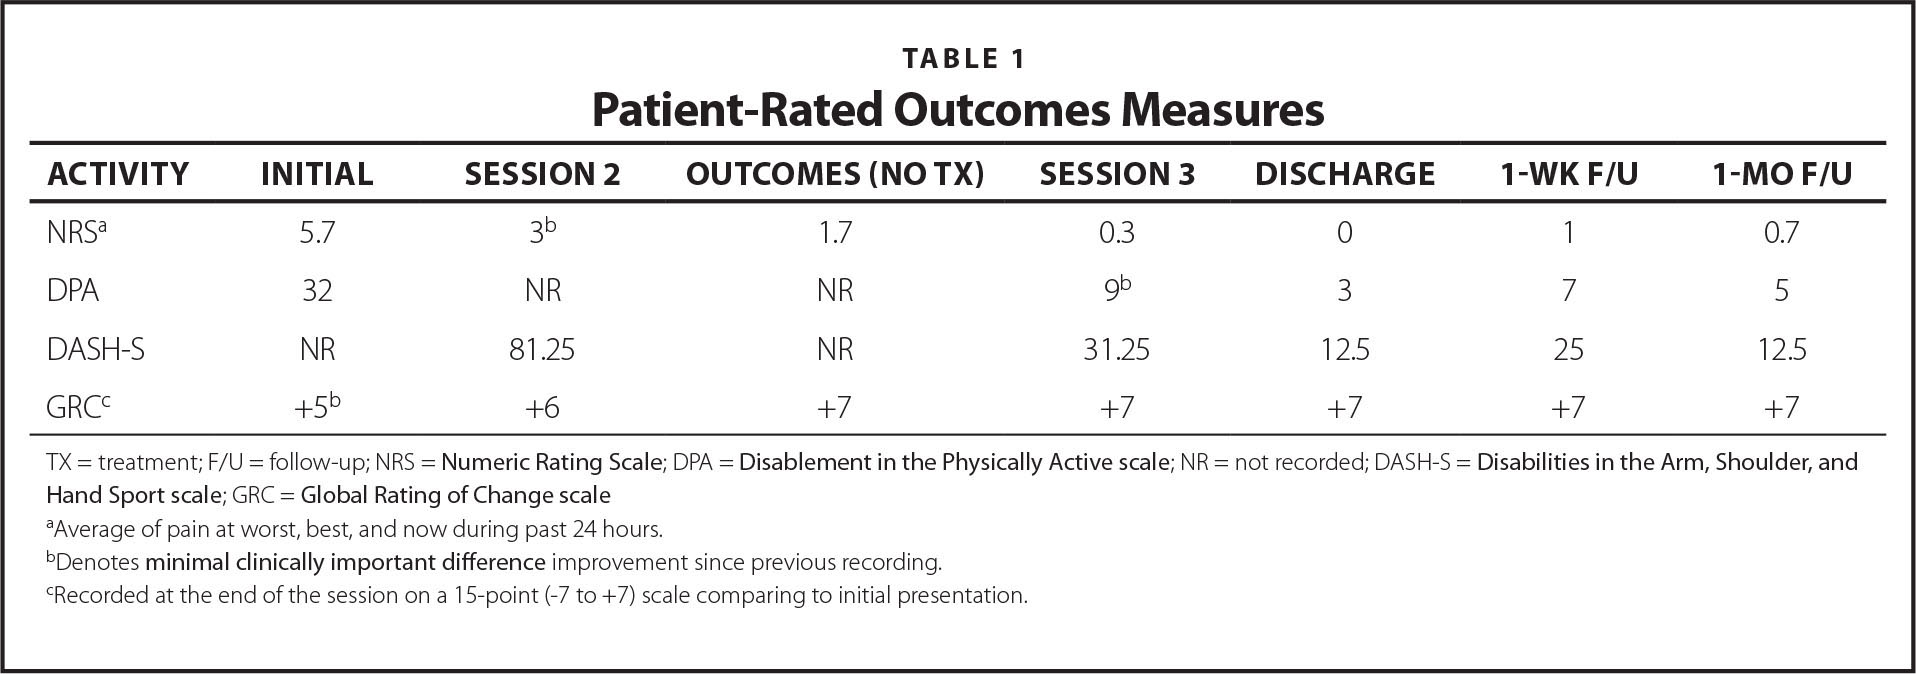 Patient-Rated Outcomes Measures